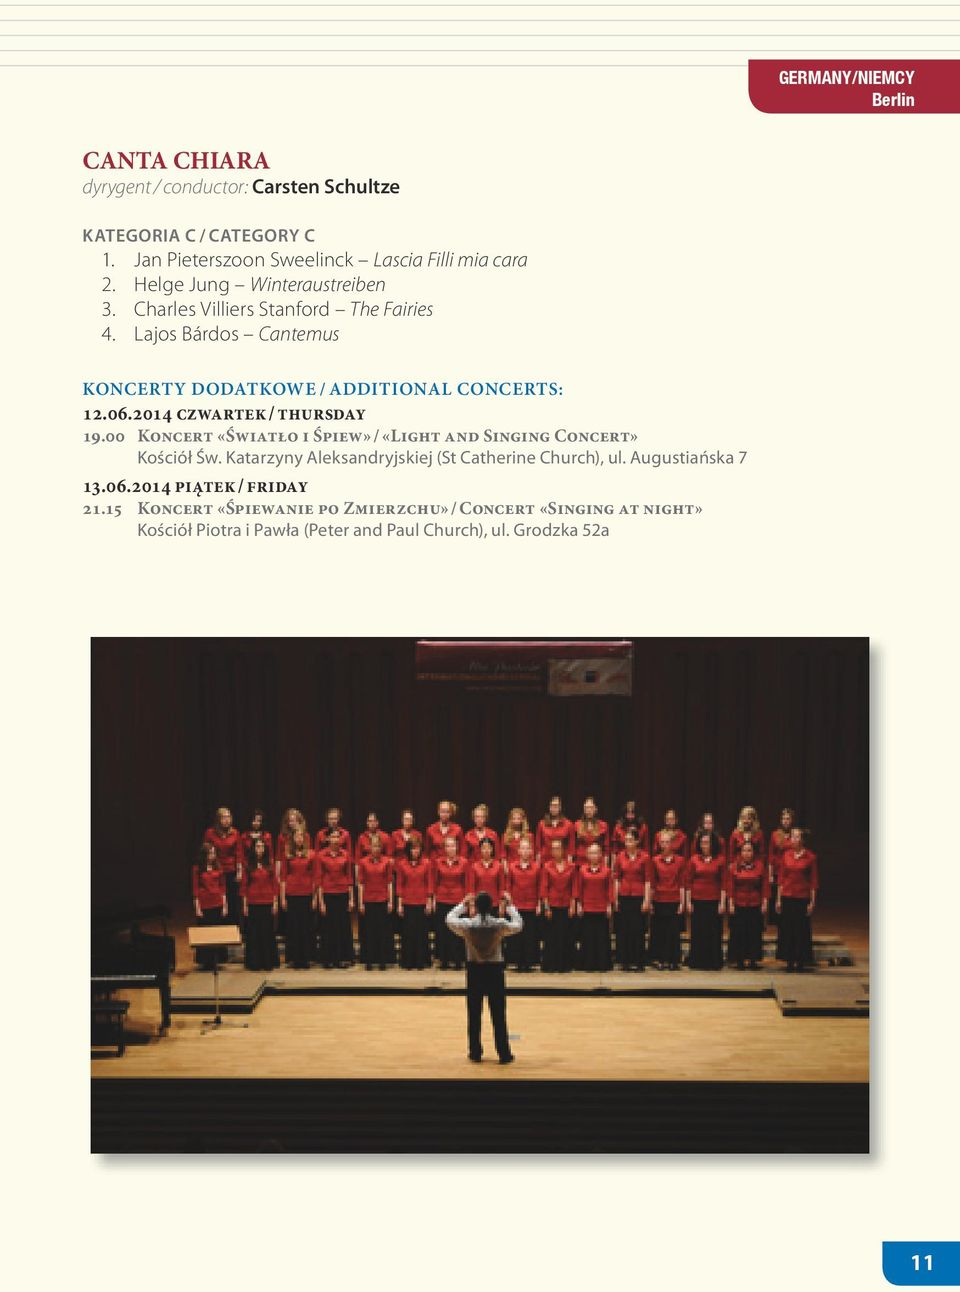 Charles Villiers Stanford The Fairies 4. Lajos Bárdos Cantemus KONCERTY DODATKOWE / ADDITIONAL CONCERTS: 12.06.